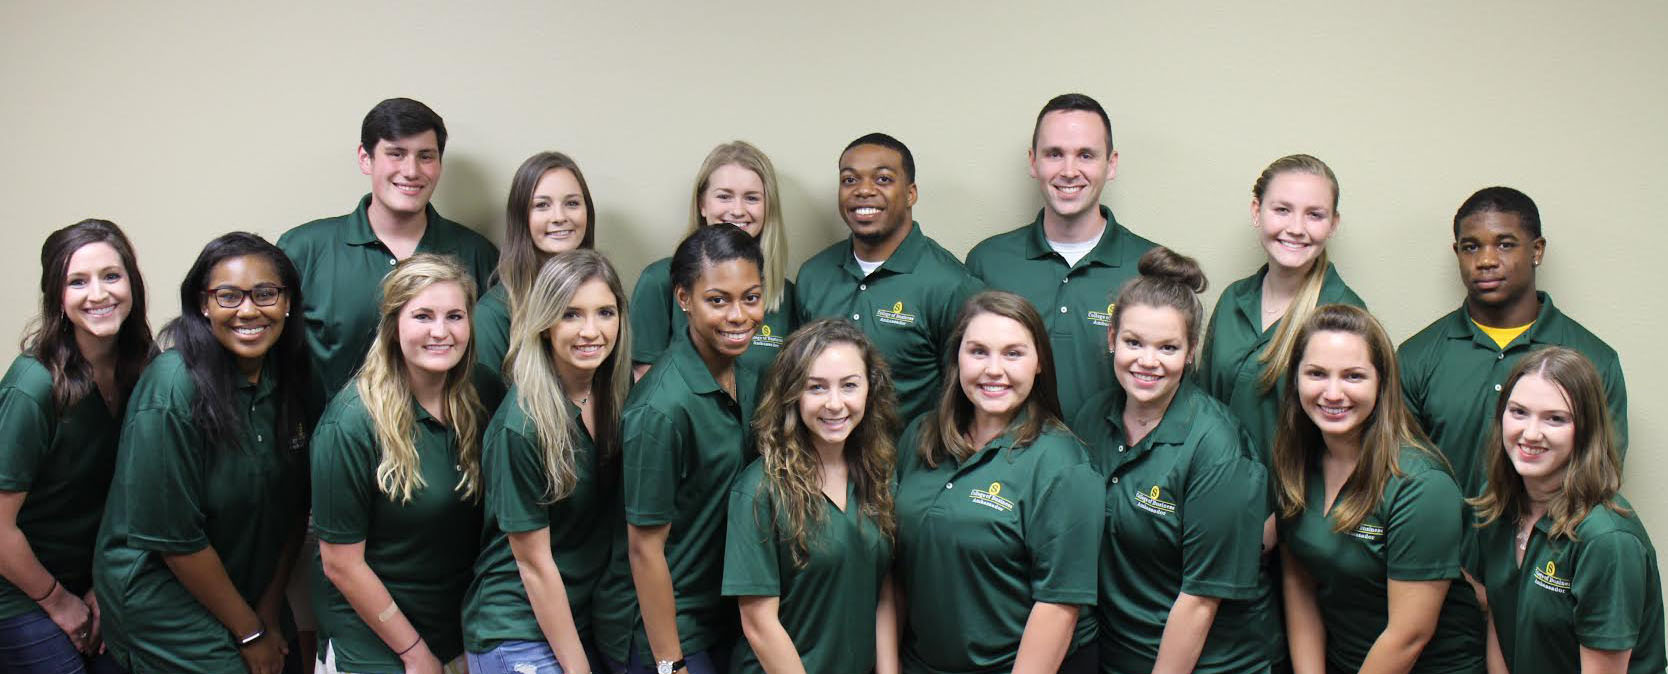 College of Business Ambassadors